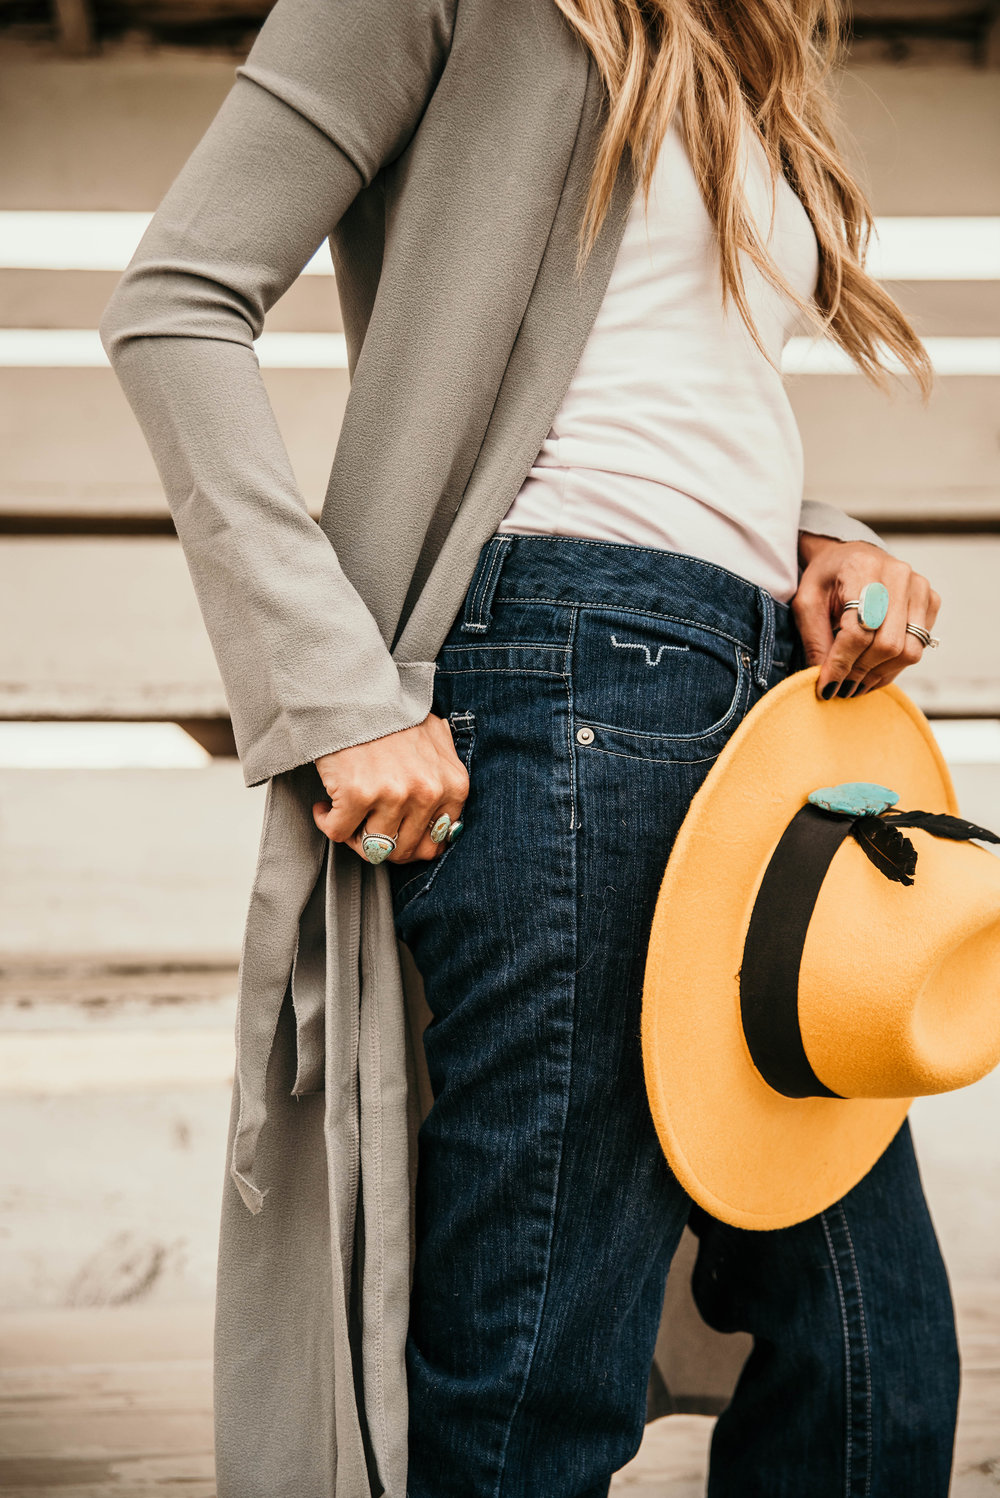 Miss. Miller's Photography | Kimes Ranch Jeans | Western Couture | Yellow Western felt hat | tourqious hat decor | cowgirl fashion jeans | western boutique